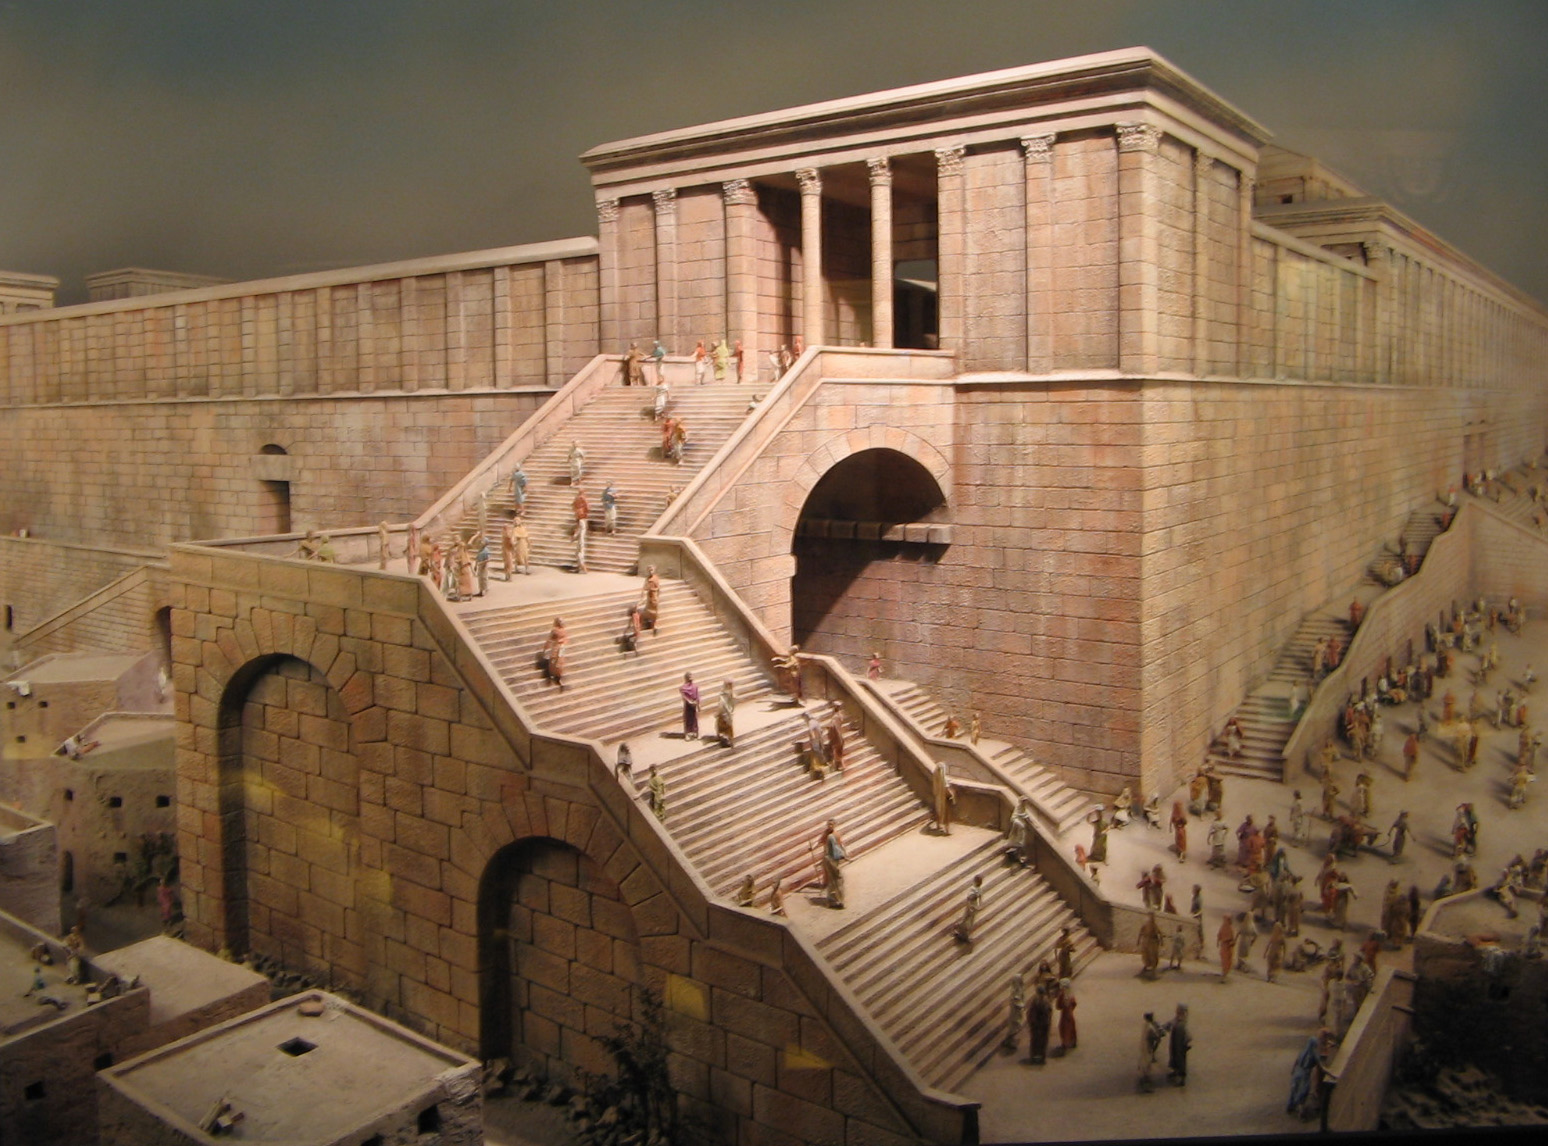 https://i2.wp.com/unitedwithisrael.org/wp-content/uploads/2011/05/ancient-jerusalem.jpg